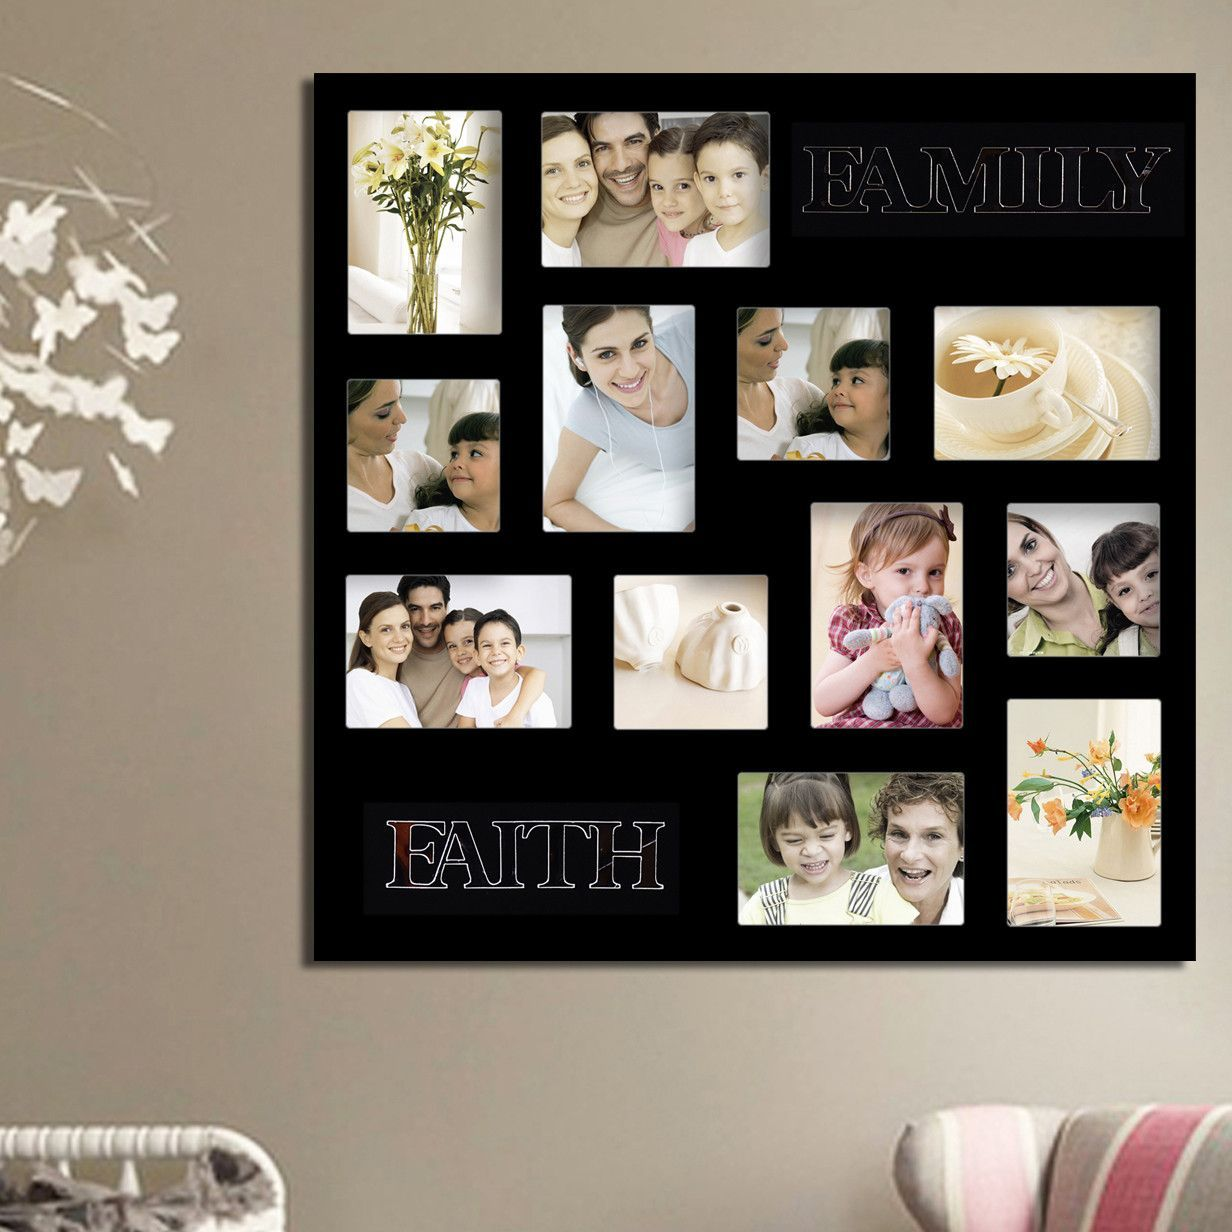 Adecotrading 12 Opening Decorative Faith And Family Wall Hanging Collage Picture Frame Family Wall Picture Arrangements Picture Collage